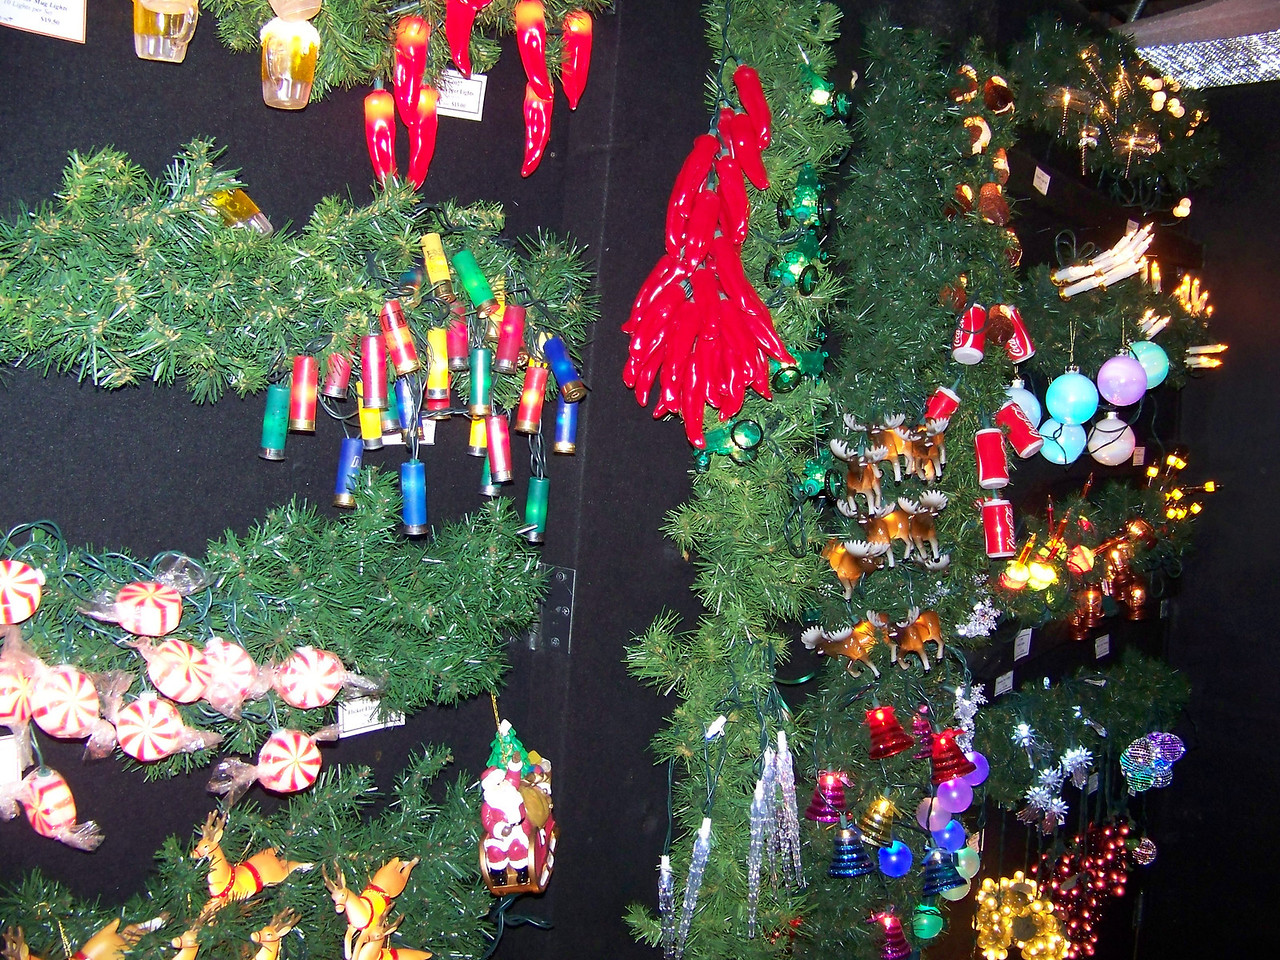 """Part of a display of Christmas lights at the Kris Kringl shop.  Clockwise from the lower left, you can choose from Santa and his reindeer, peppermint candies, shotgun shells (?!), beer steins, two different kinds of peppers, tractors, owls, dragonflies, candles, Coca-Cola cans, moose, snowflakes, disco mirror balls, bunches of grapes, bells, and icicles, among many others. [Leavenworth, WA - December 2013 - <b><a target=""""_new"""" href=""""http://youtu.be/NqCqDCOY_tc"""">Watch my video here</a></b>]"""